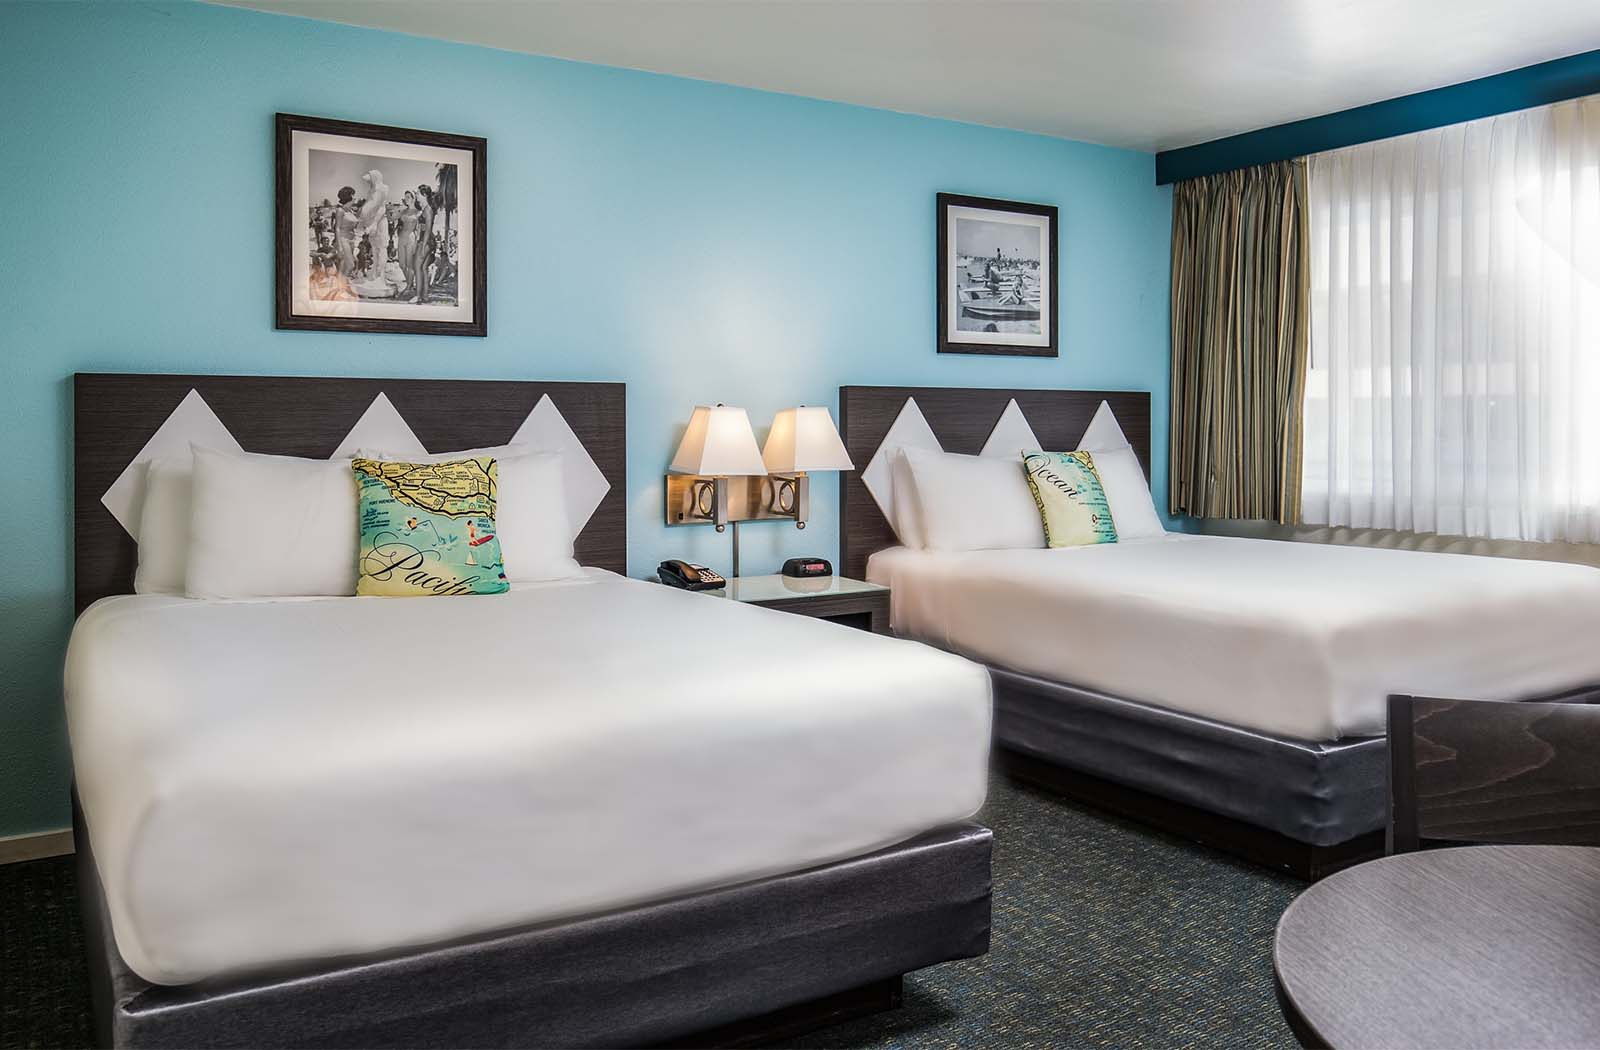 san diego - rooms and suites